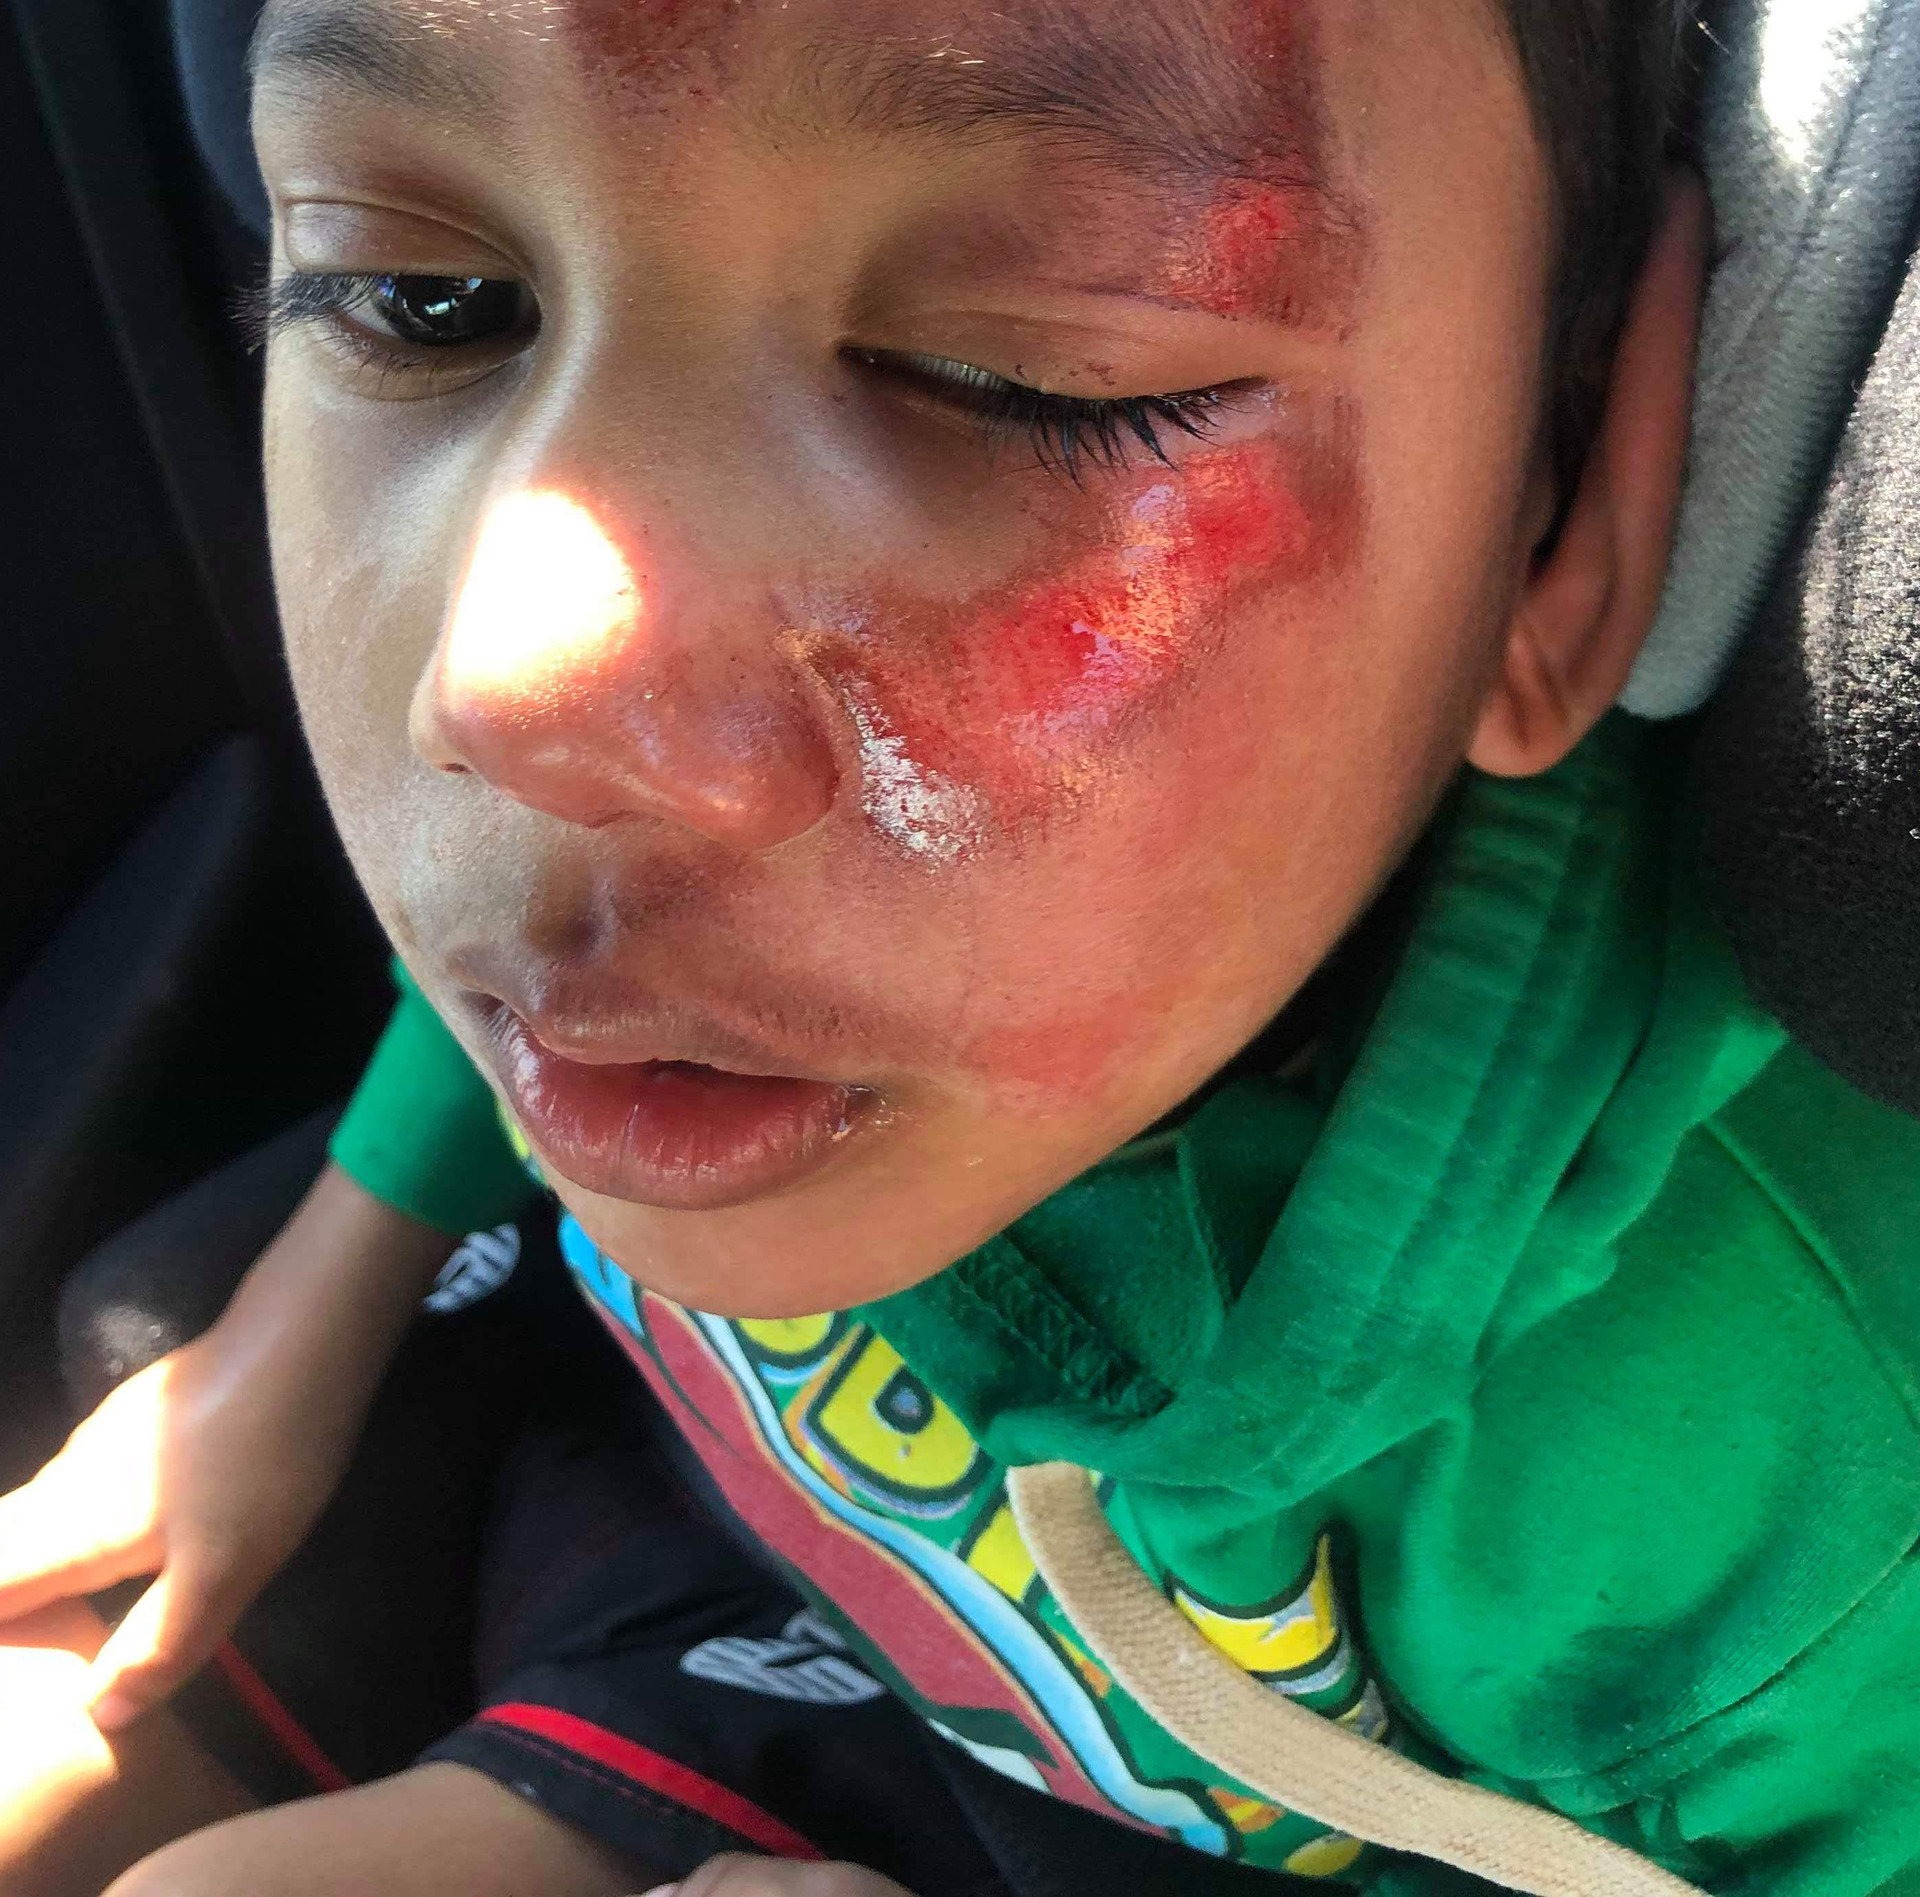 Boy, 4, with cerebral palsy suffers horrific injuries at kindy